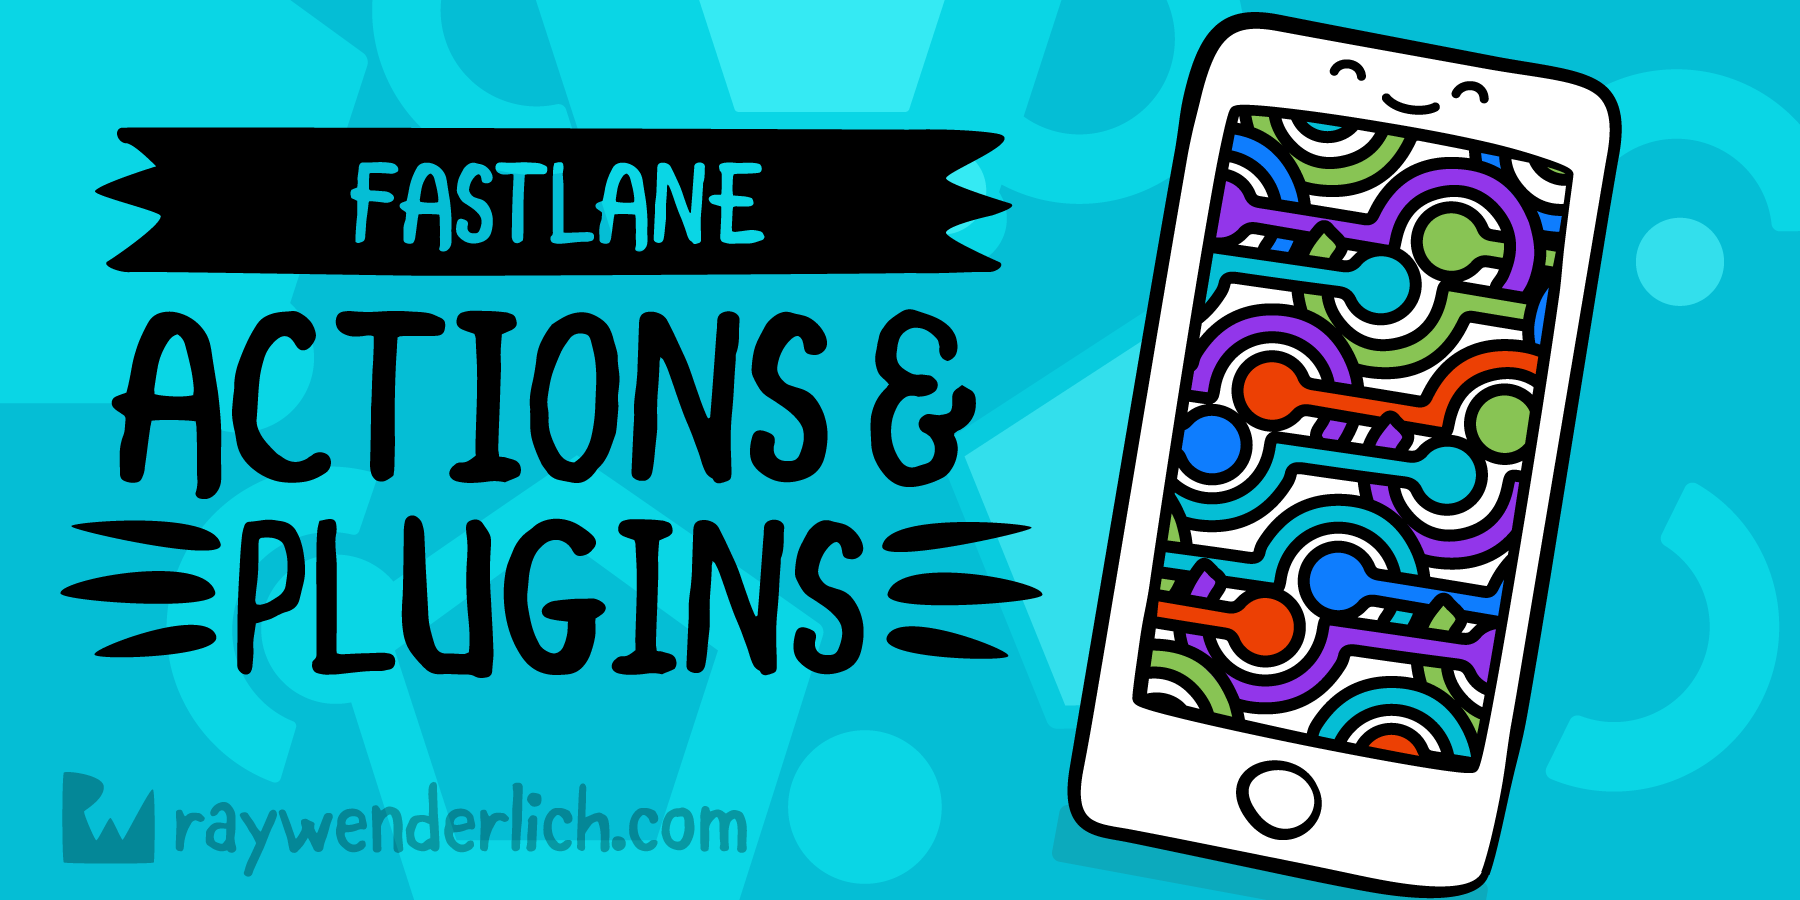 fastlane Tutorial: Actions and Plugins [FREE]